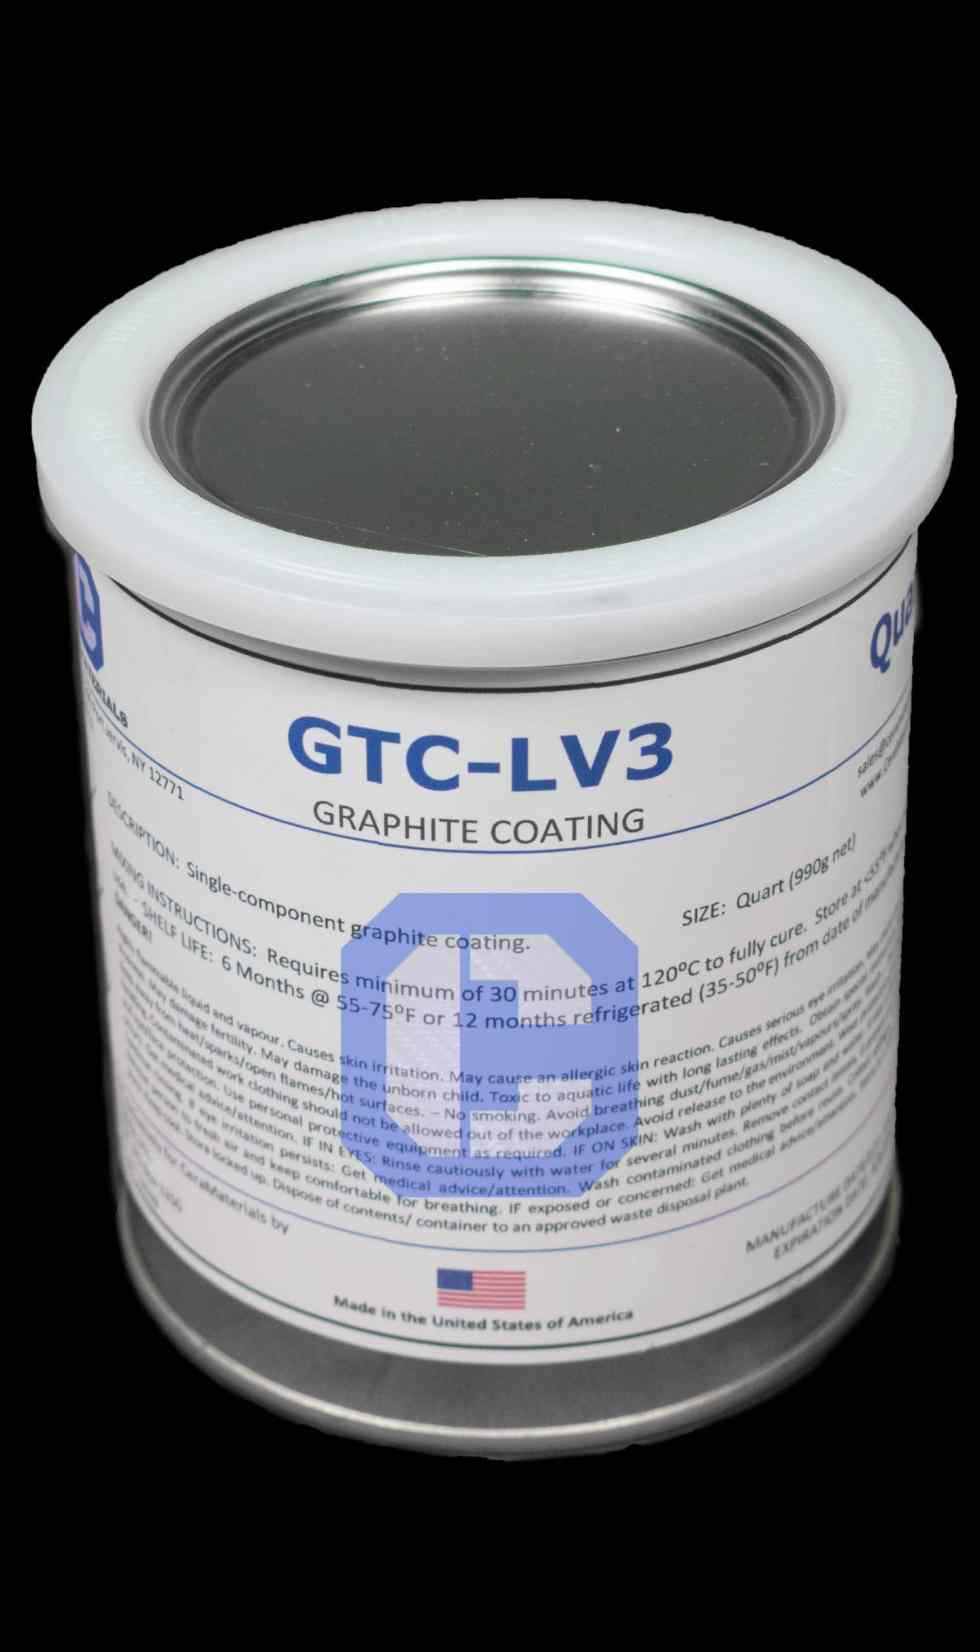 GTC-LV3 Graphite Coating from CeraMaterials